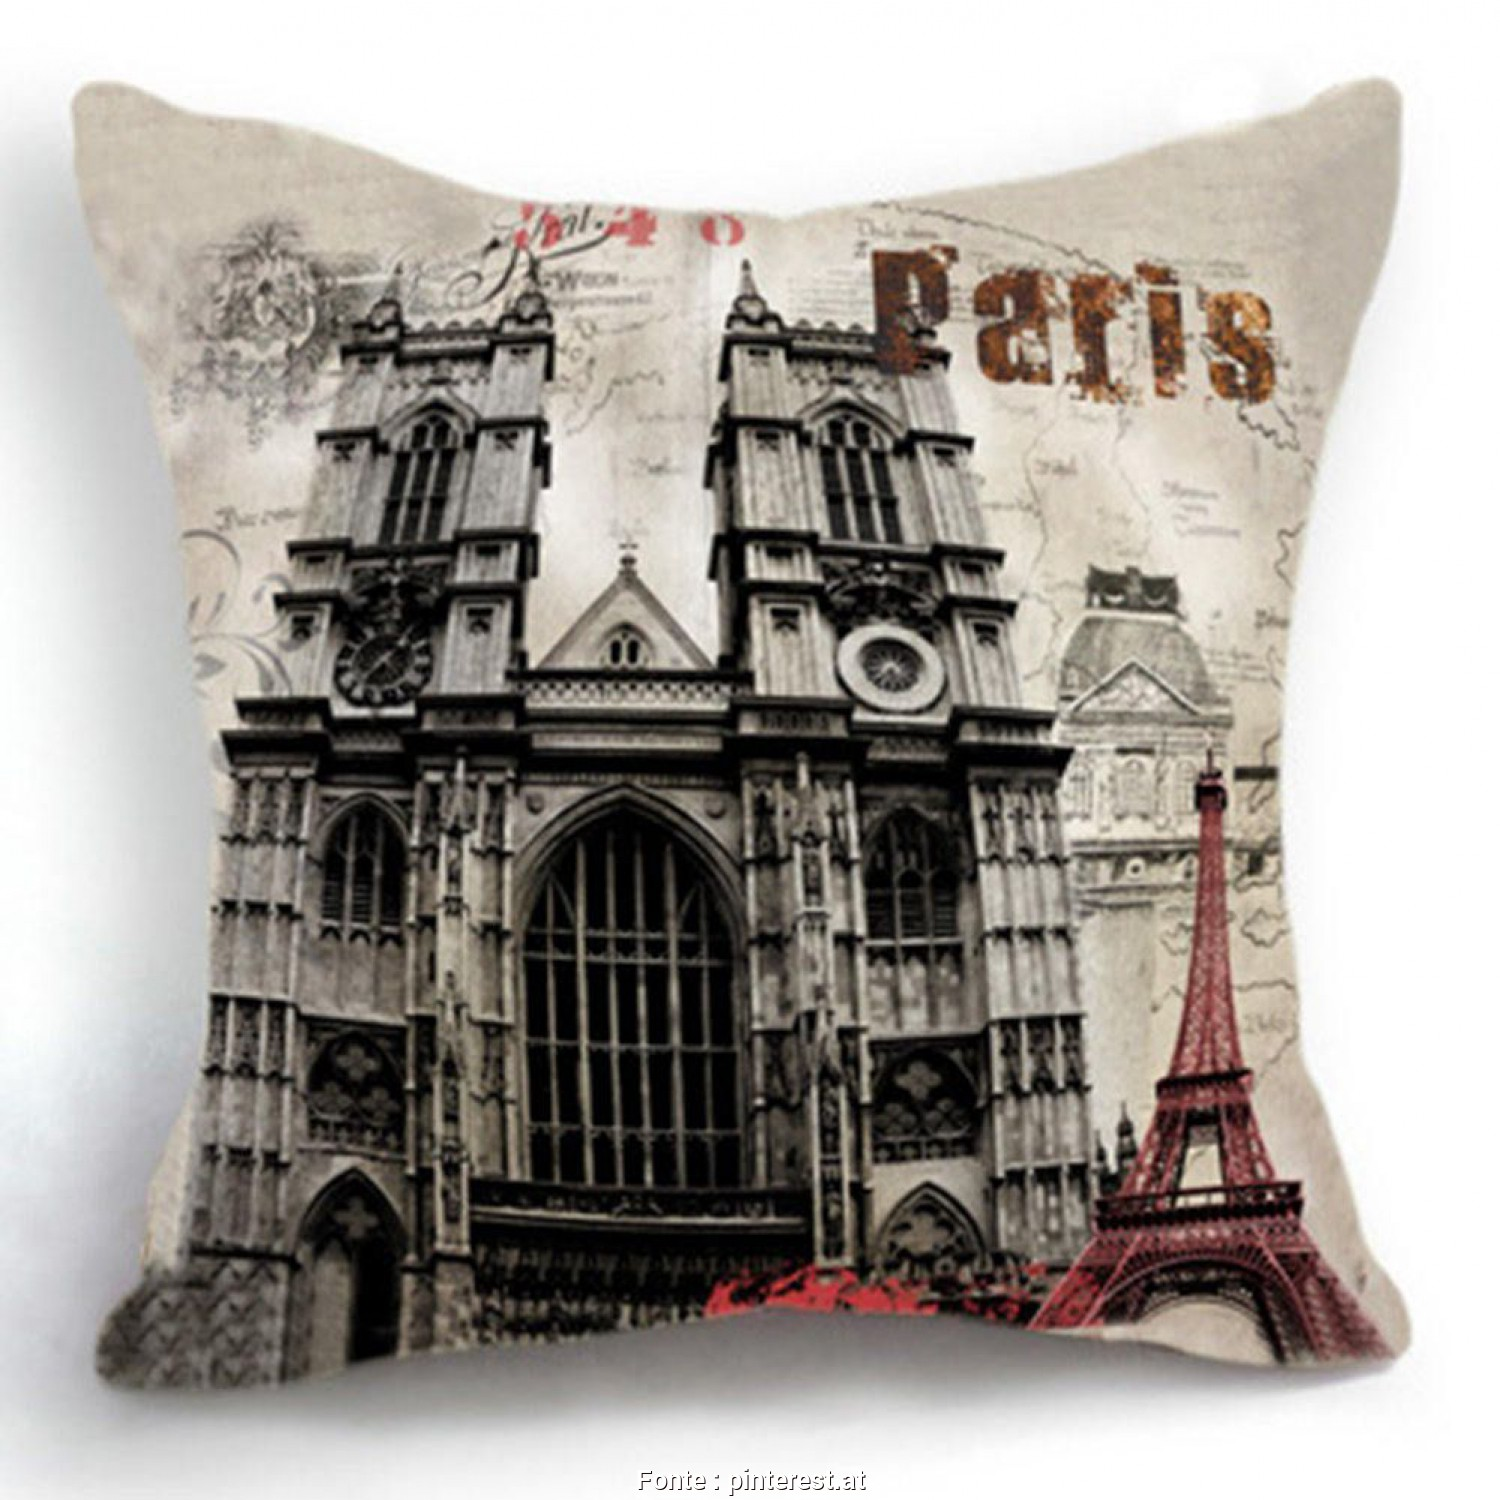 Cuscini Divano Decorativi, Migliore Housse De Coussin Retro Torre Eiffel Di Parigi Home Decor Cuscino Divano Cuscini Decorativi Capa Almofada Cojines Decorativos(China (Mainland))